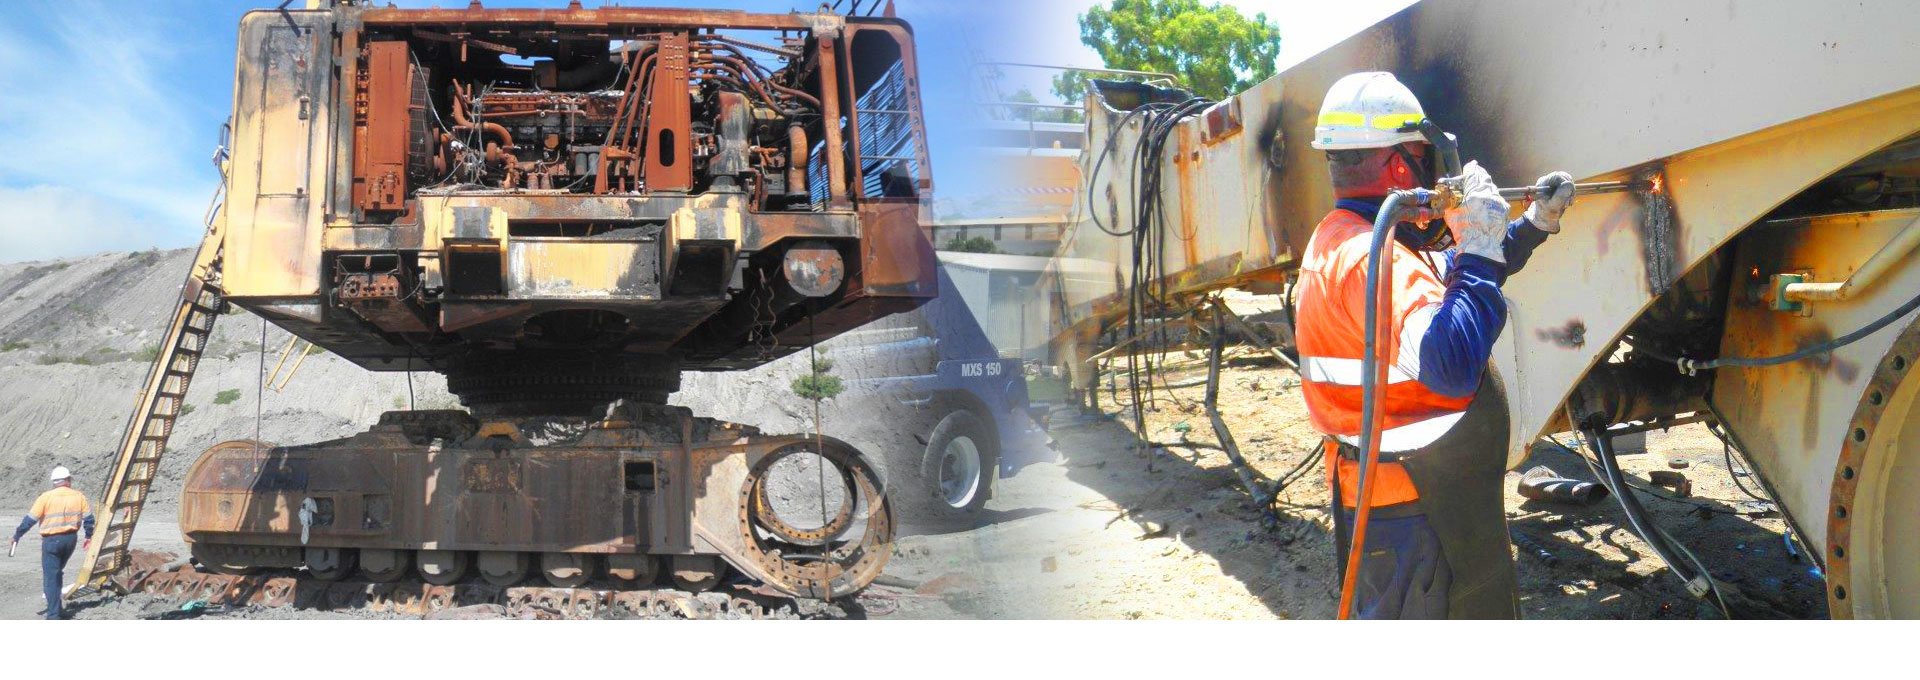 Safely removing and scraping redundant plant and machinery is our speciality